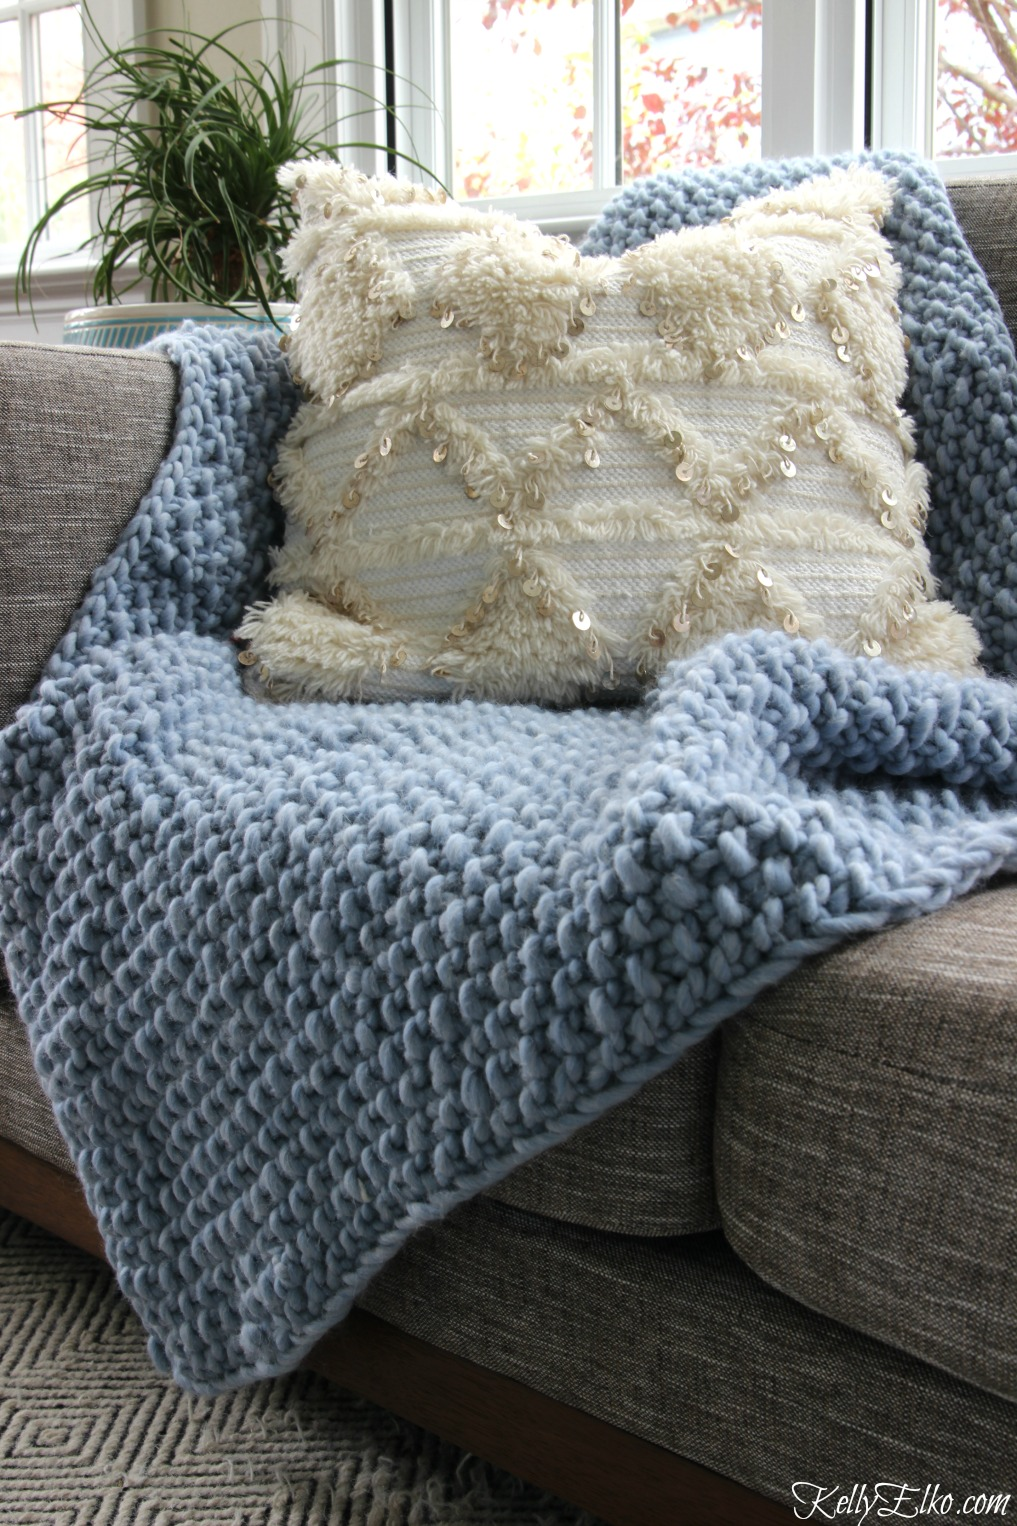 See how easy it is to learn to knit this chunky wool blanket kellyelko.com